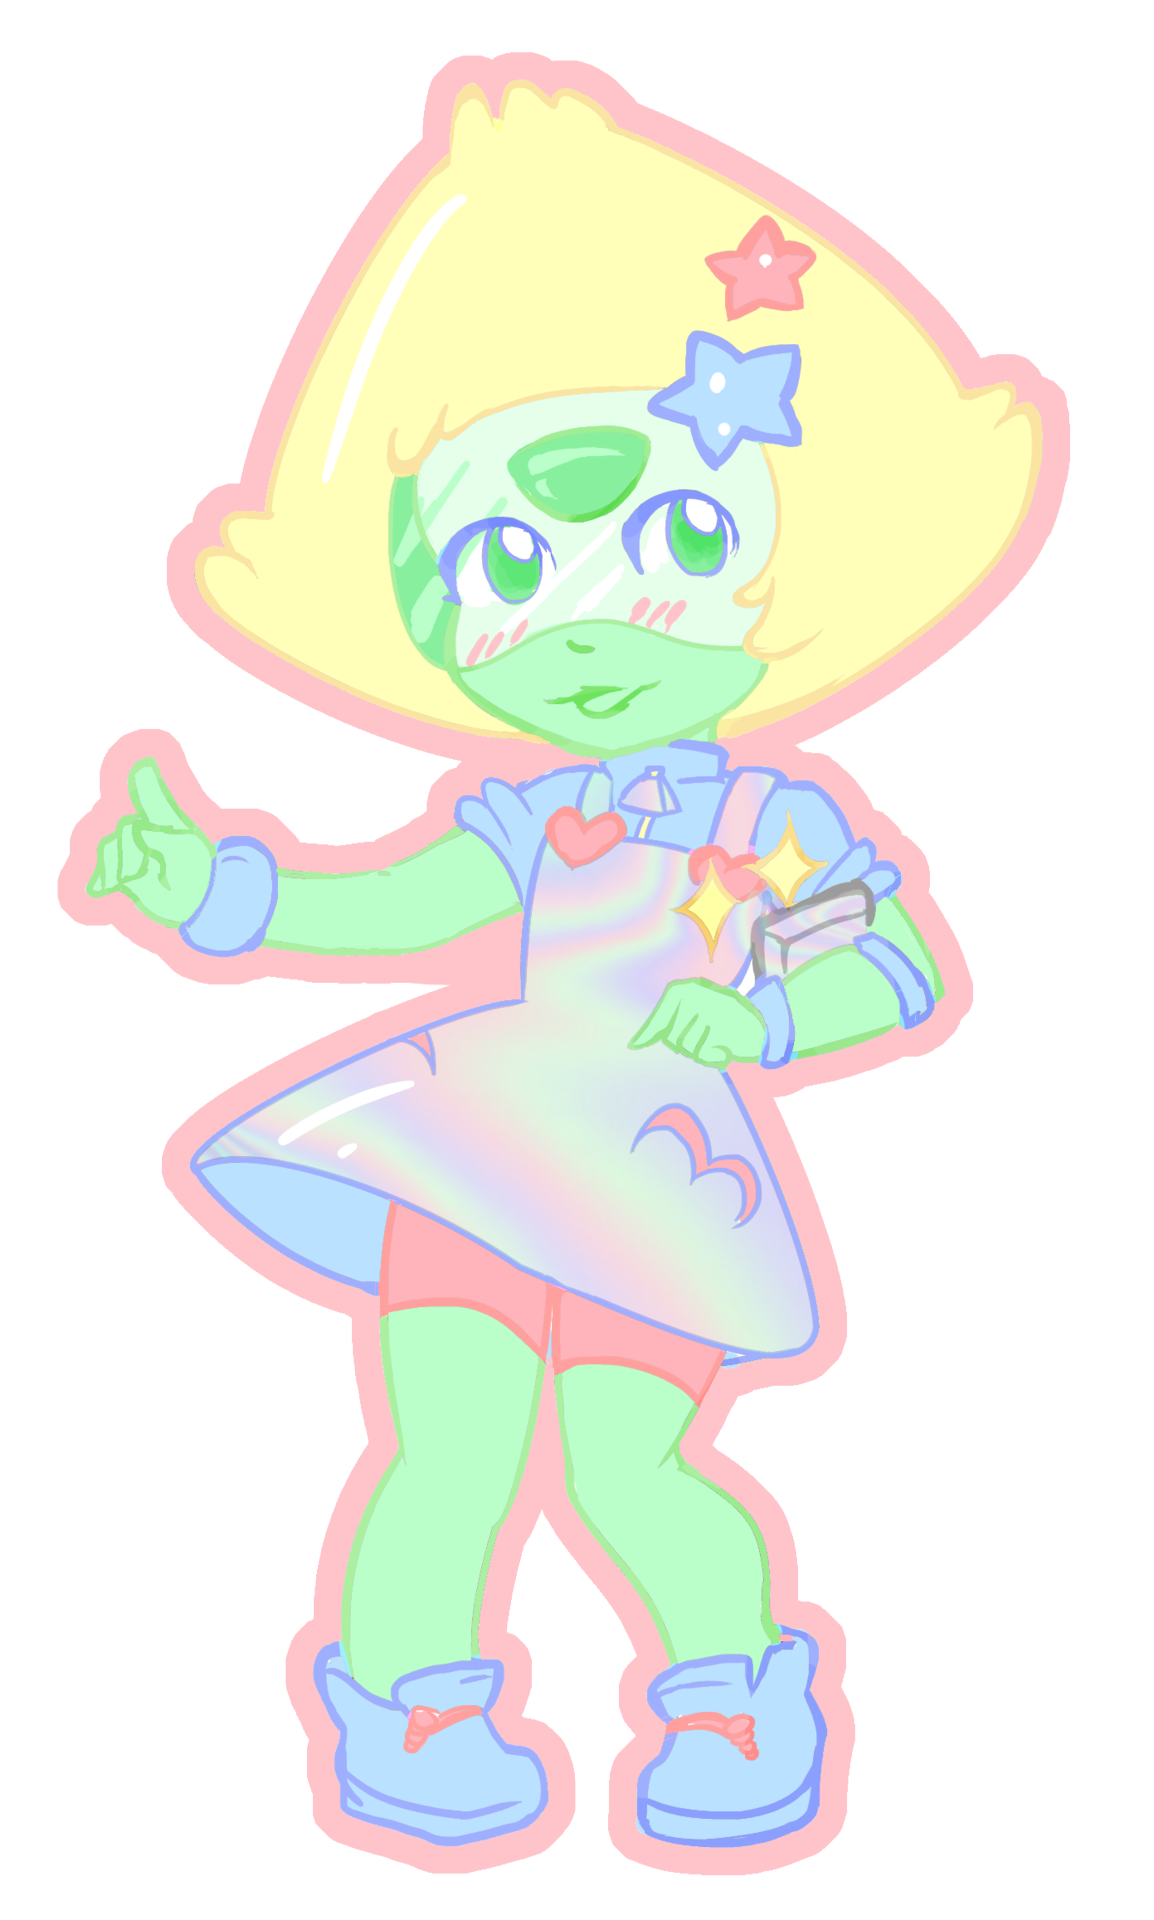 I'm trying to design a character for Starfinder but I'm real bad with sci fi so I ended up drawing an uchuu kei Peridot instead. lookshehasstaraccessoriesjustlikearealcrystalgem